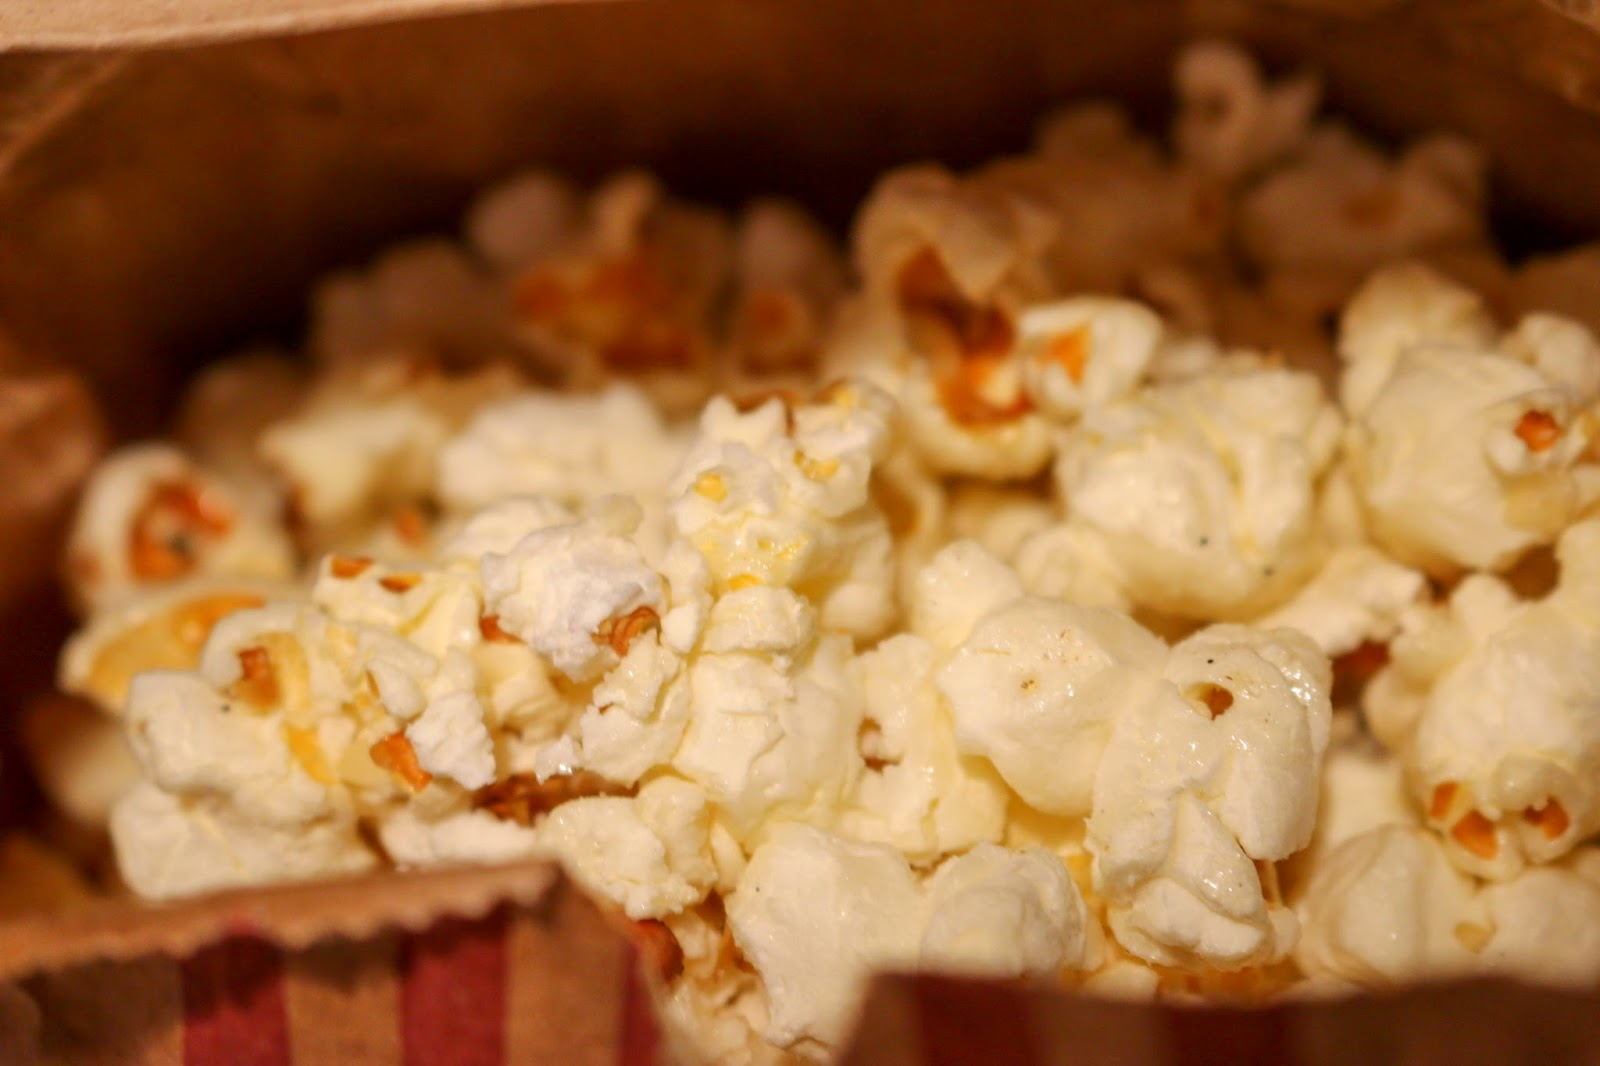 Philly Food Blog: Go Popcorn